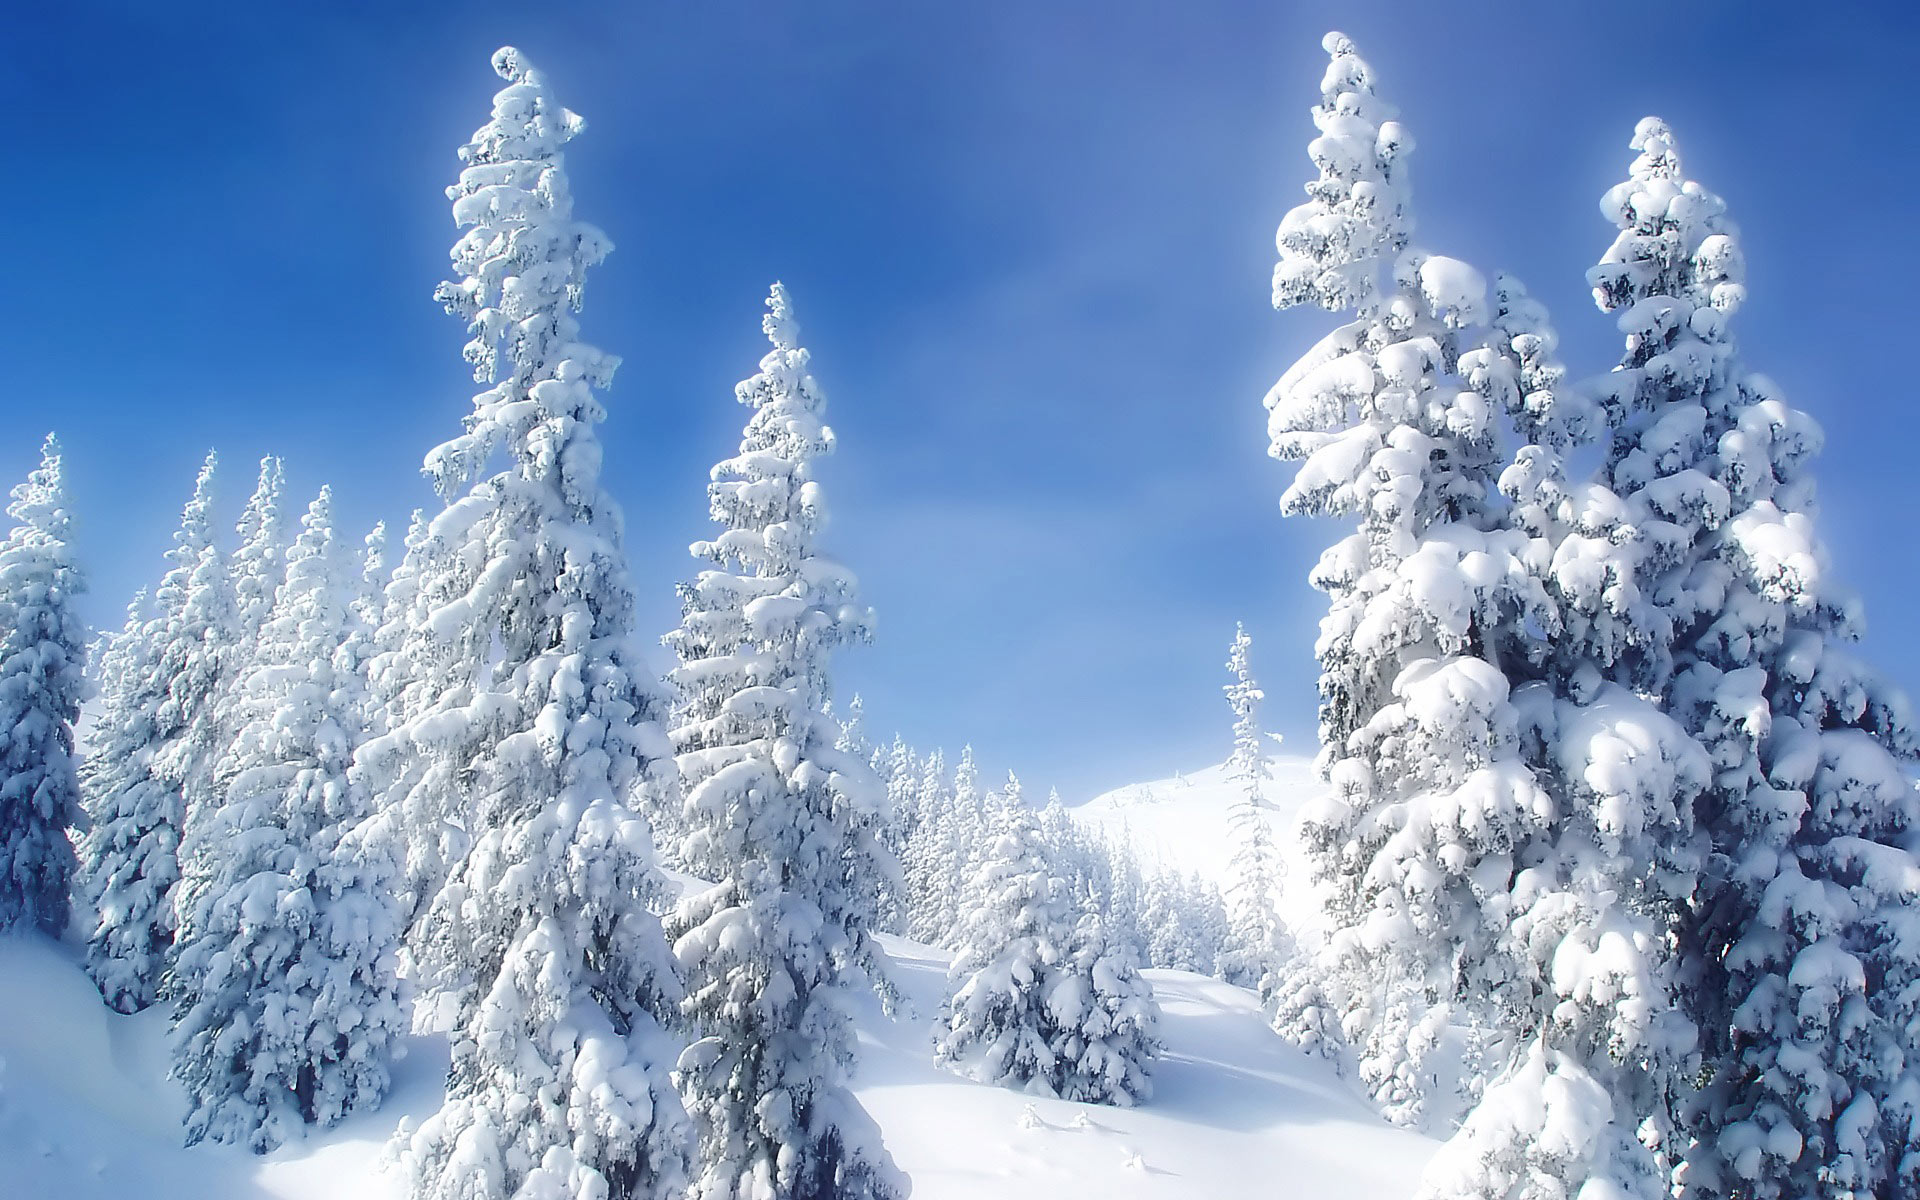 Mountain Snow Forest Desktop Wallpaper Images Free Download